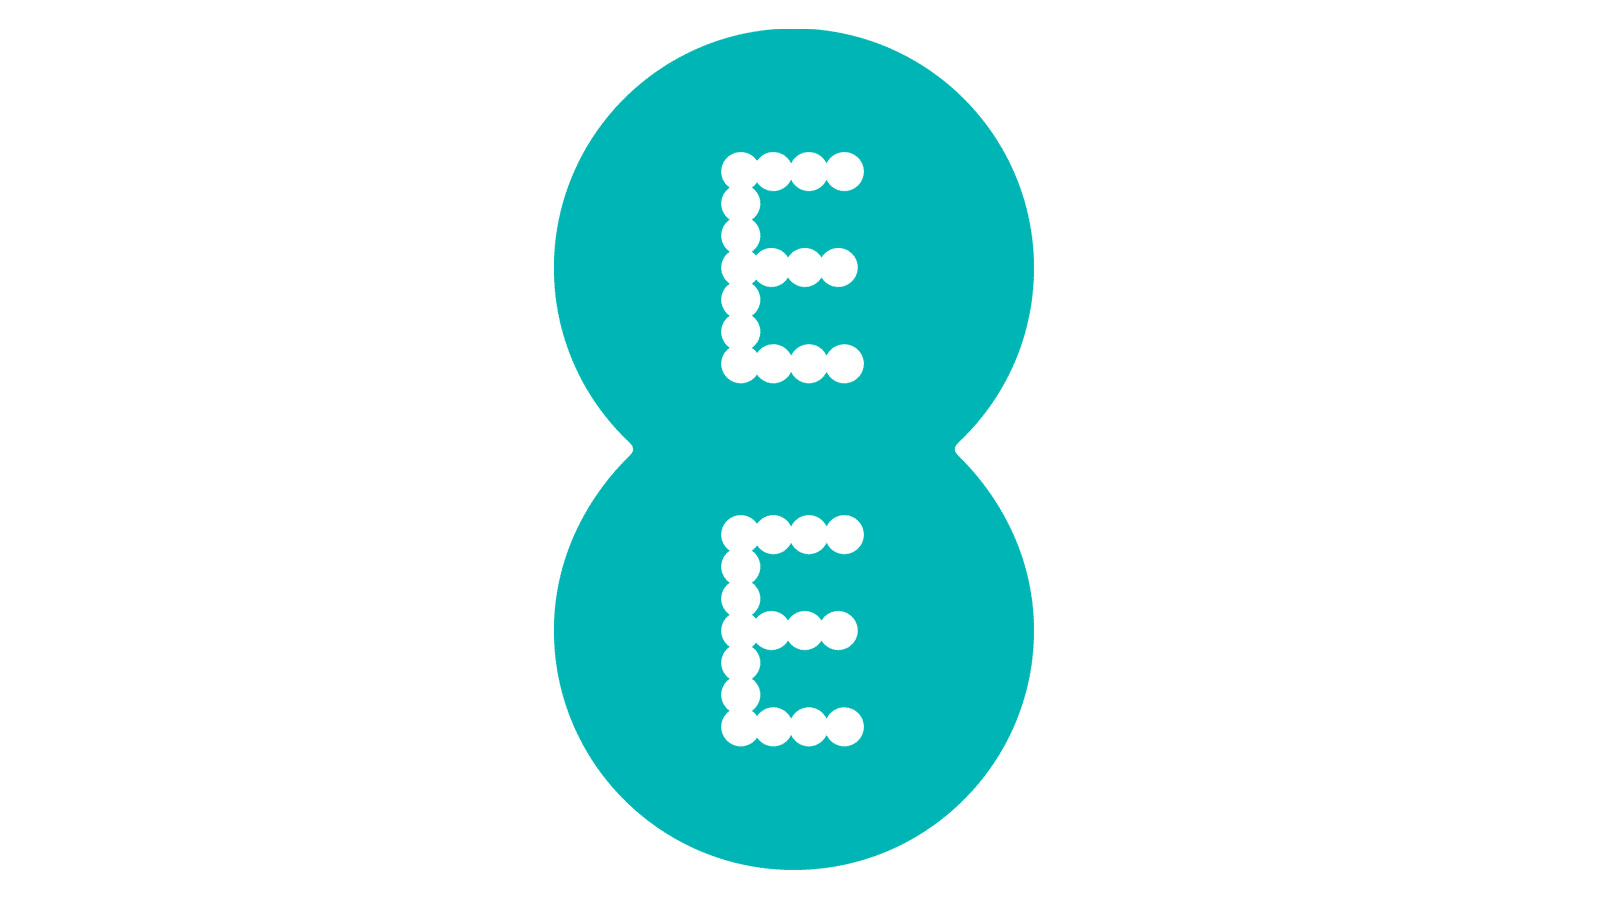 EE Customer Service